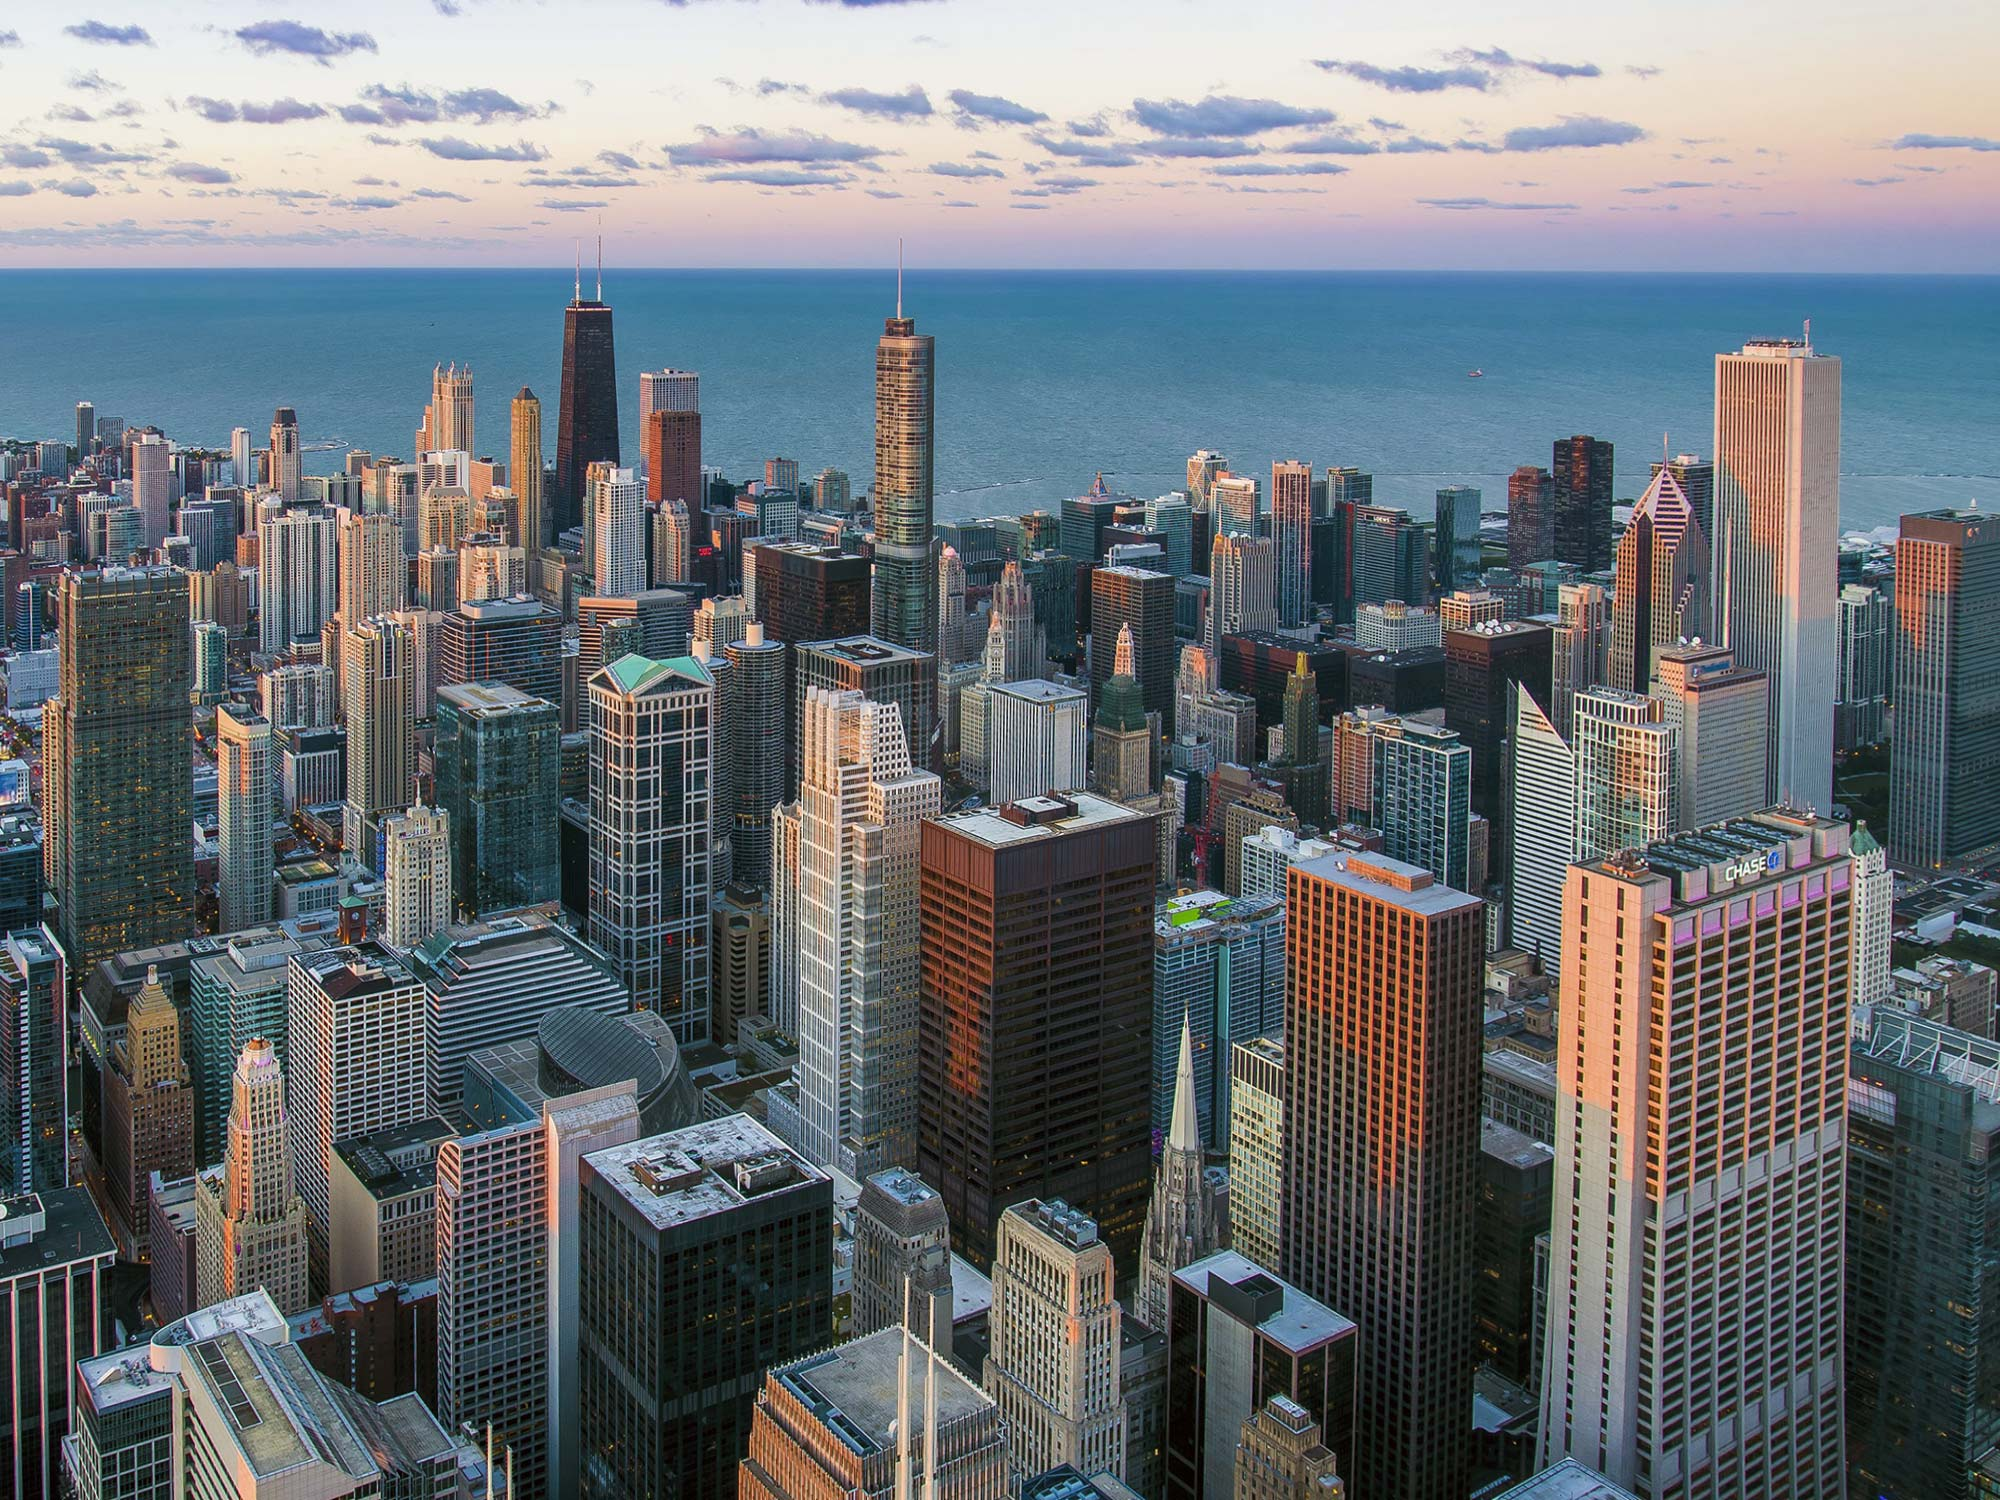 Chicago skyline - Skyscrapers in Chicago